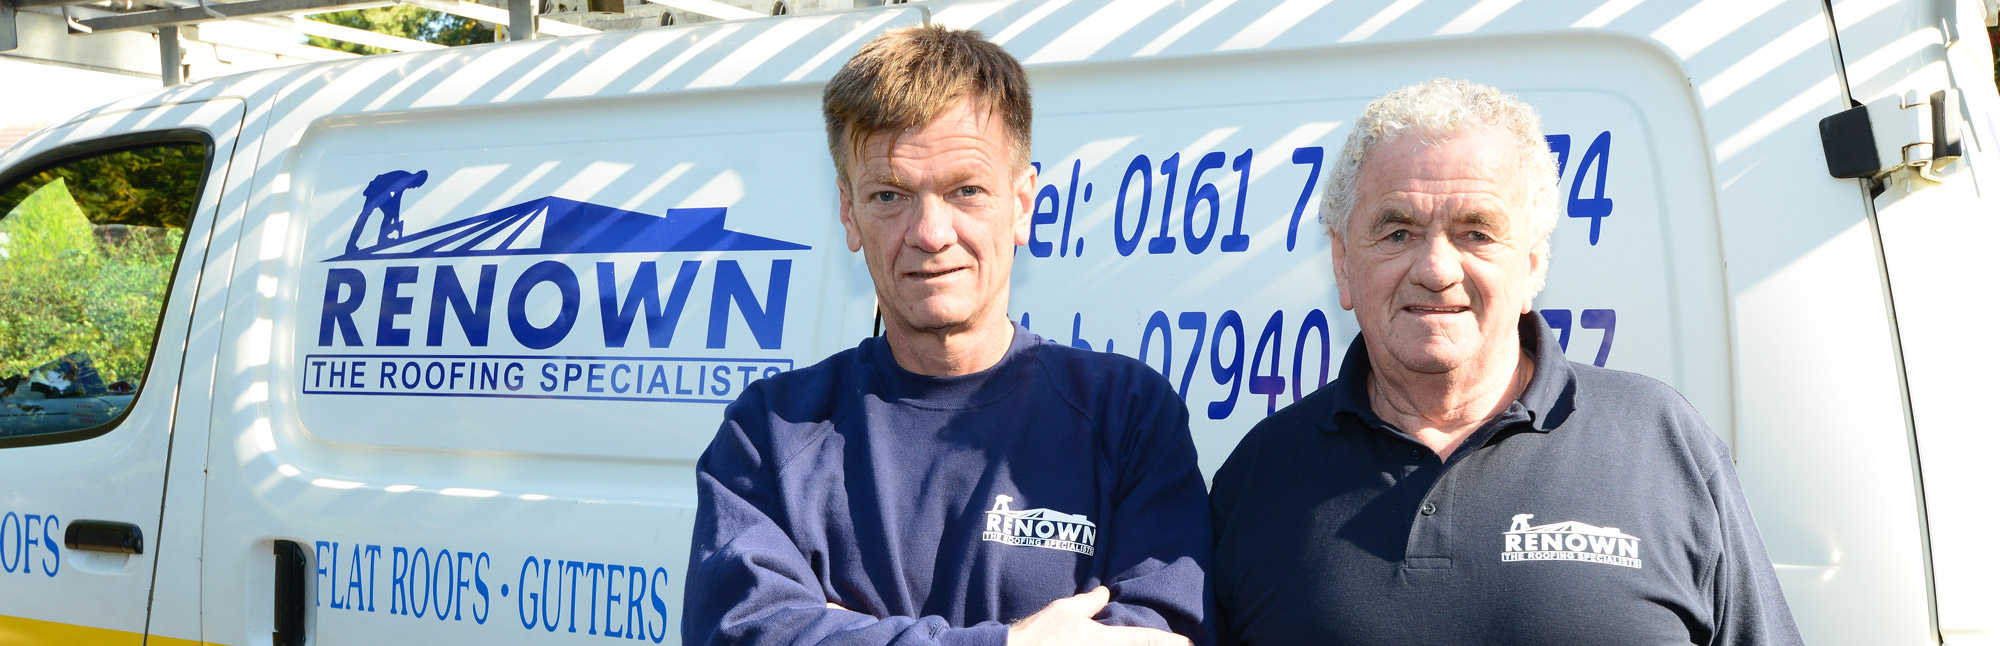 renown roofing manchester